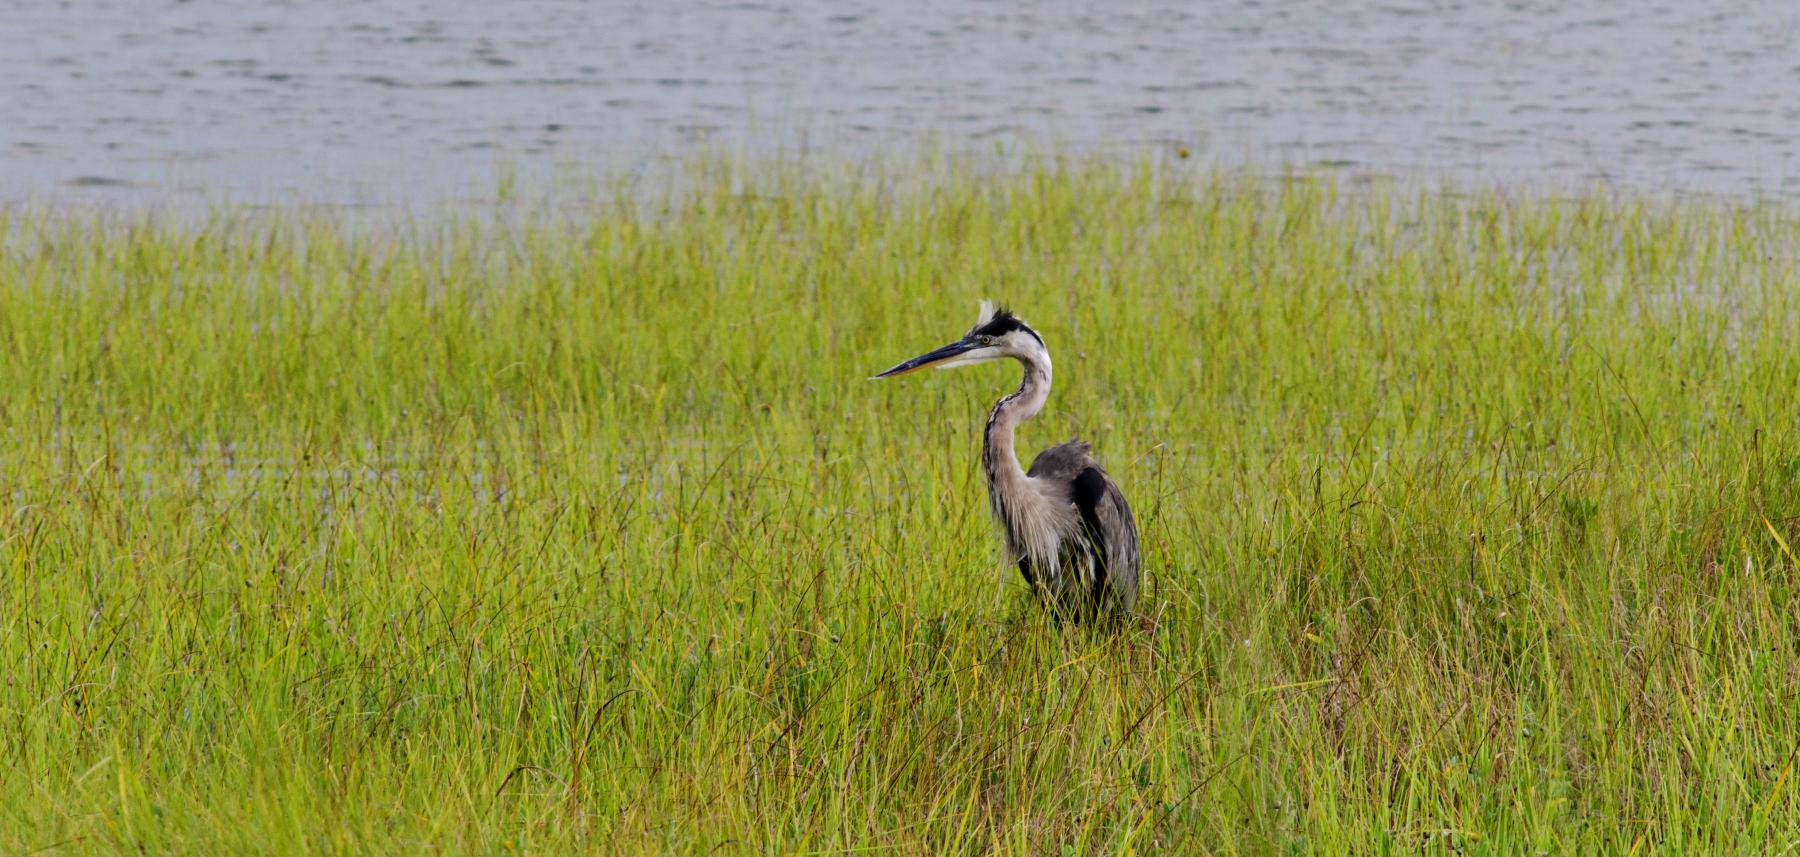 Heron by the water in North Carolina